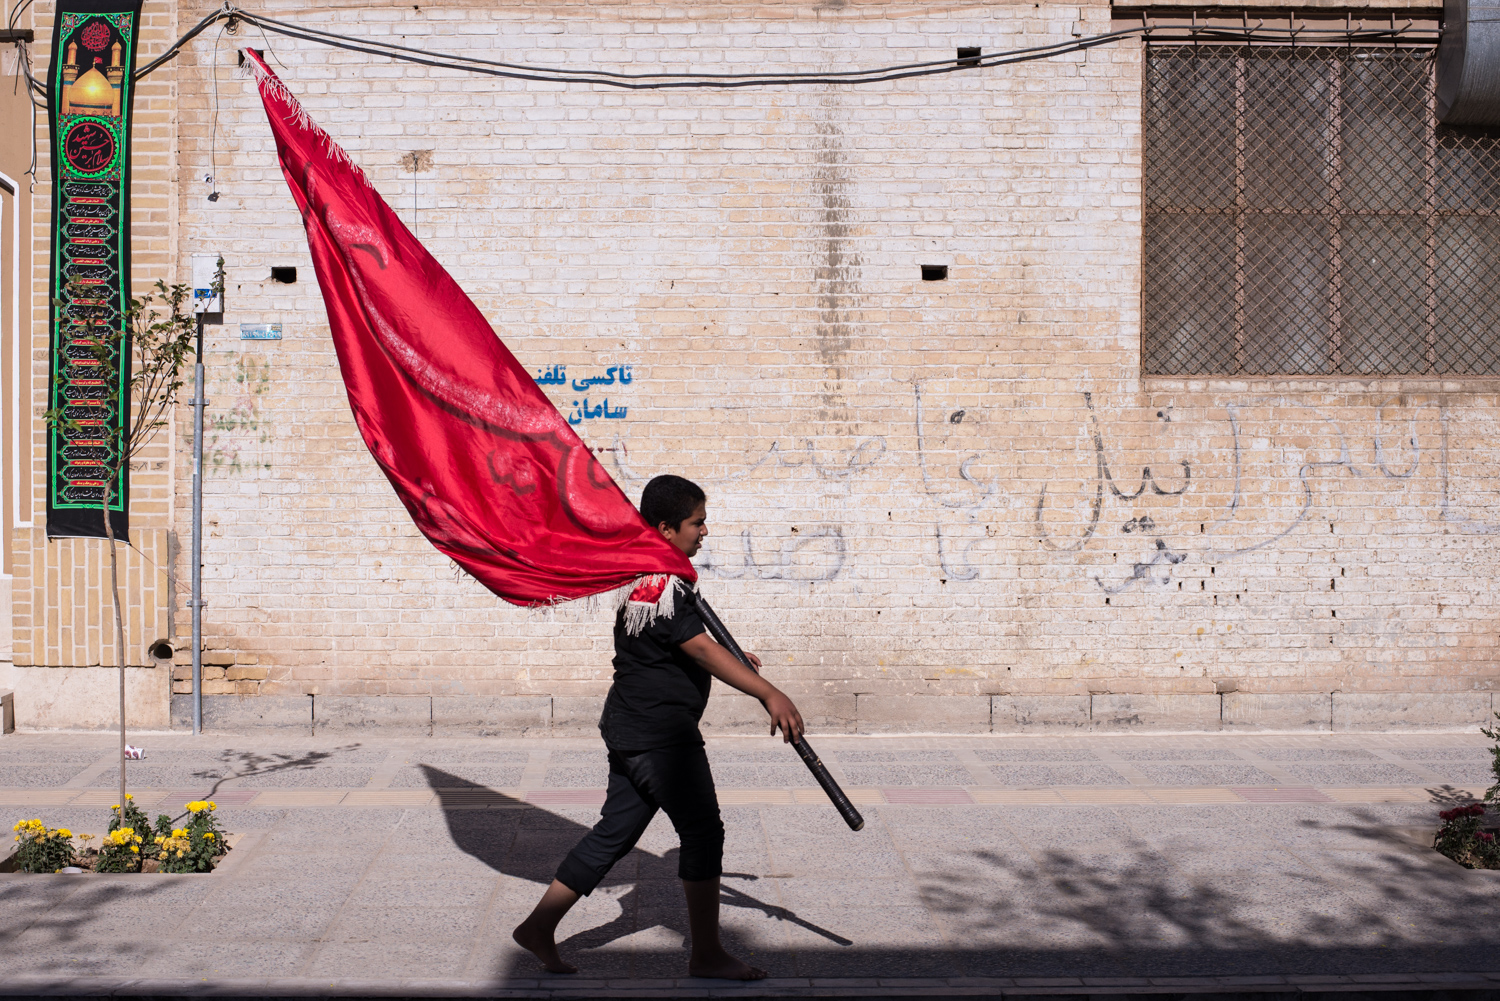 A boy carrying a flag used in an Ashura parade in Yazd, Iran. His concentration reflects the intensity of his involvement in the classic Shia mourning of Hussein.